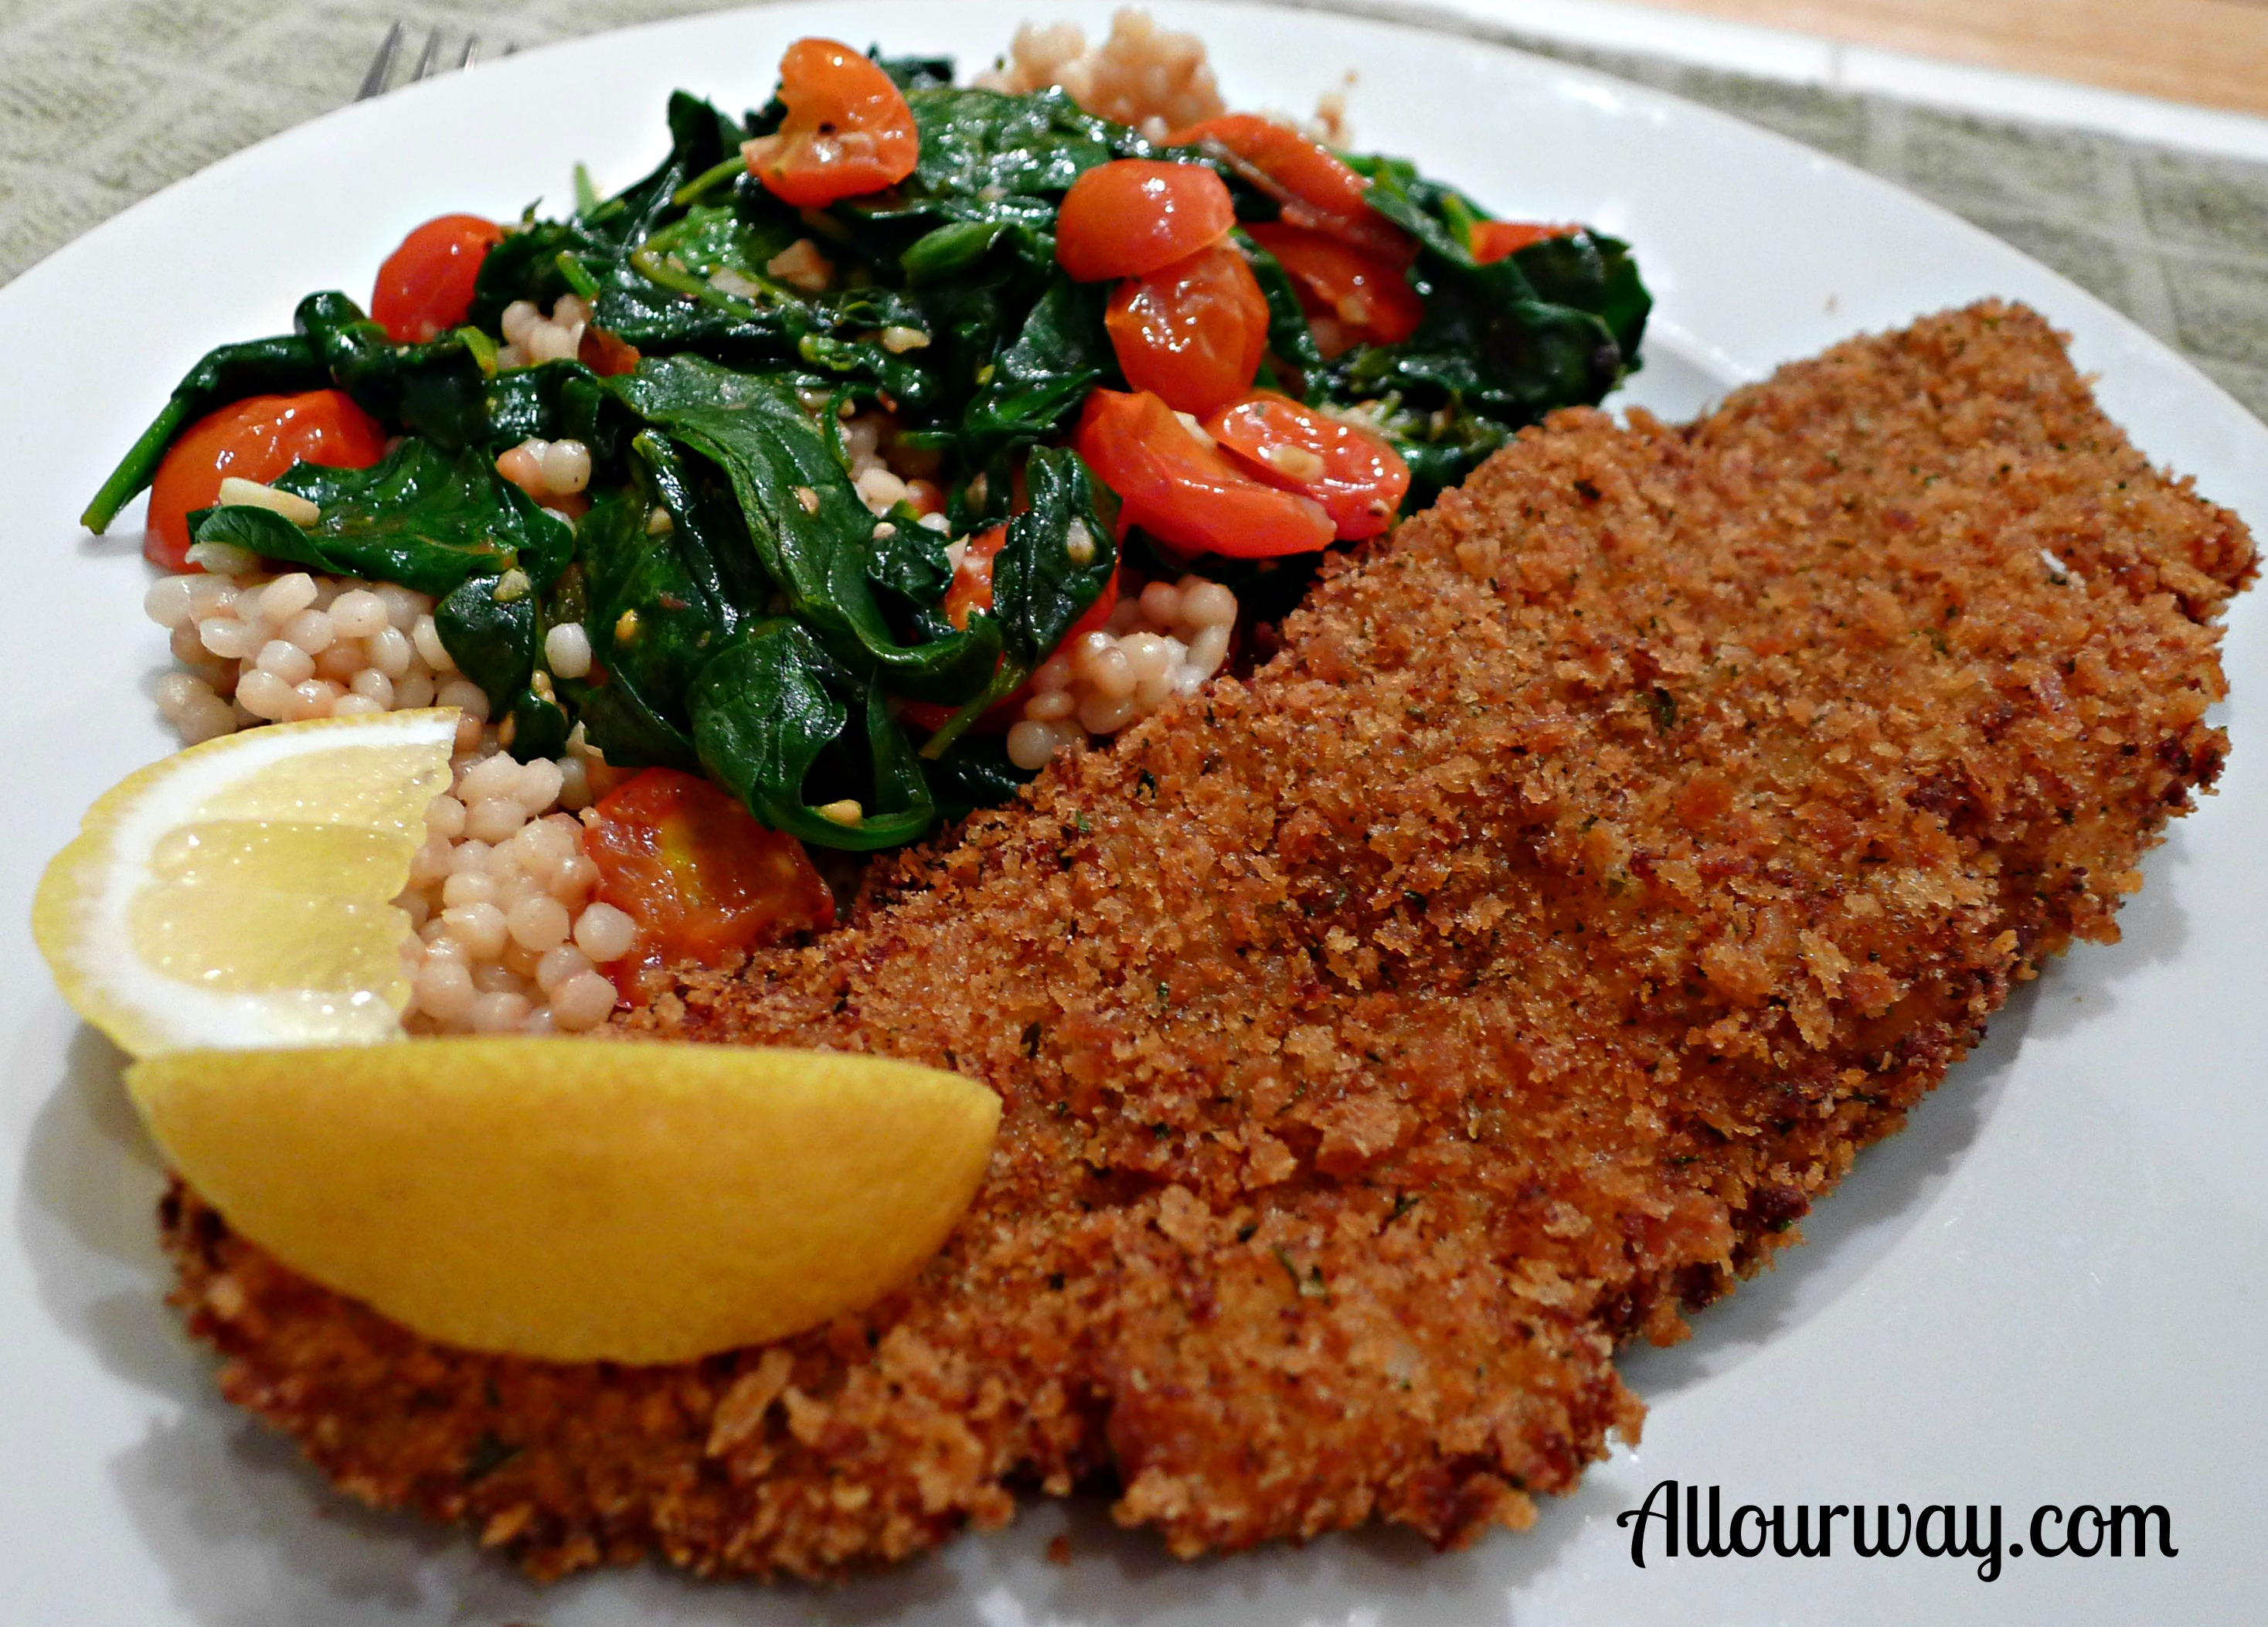 Crispy Fried Fish for Catch of the Day Special